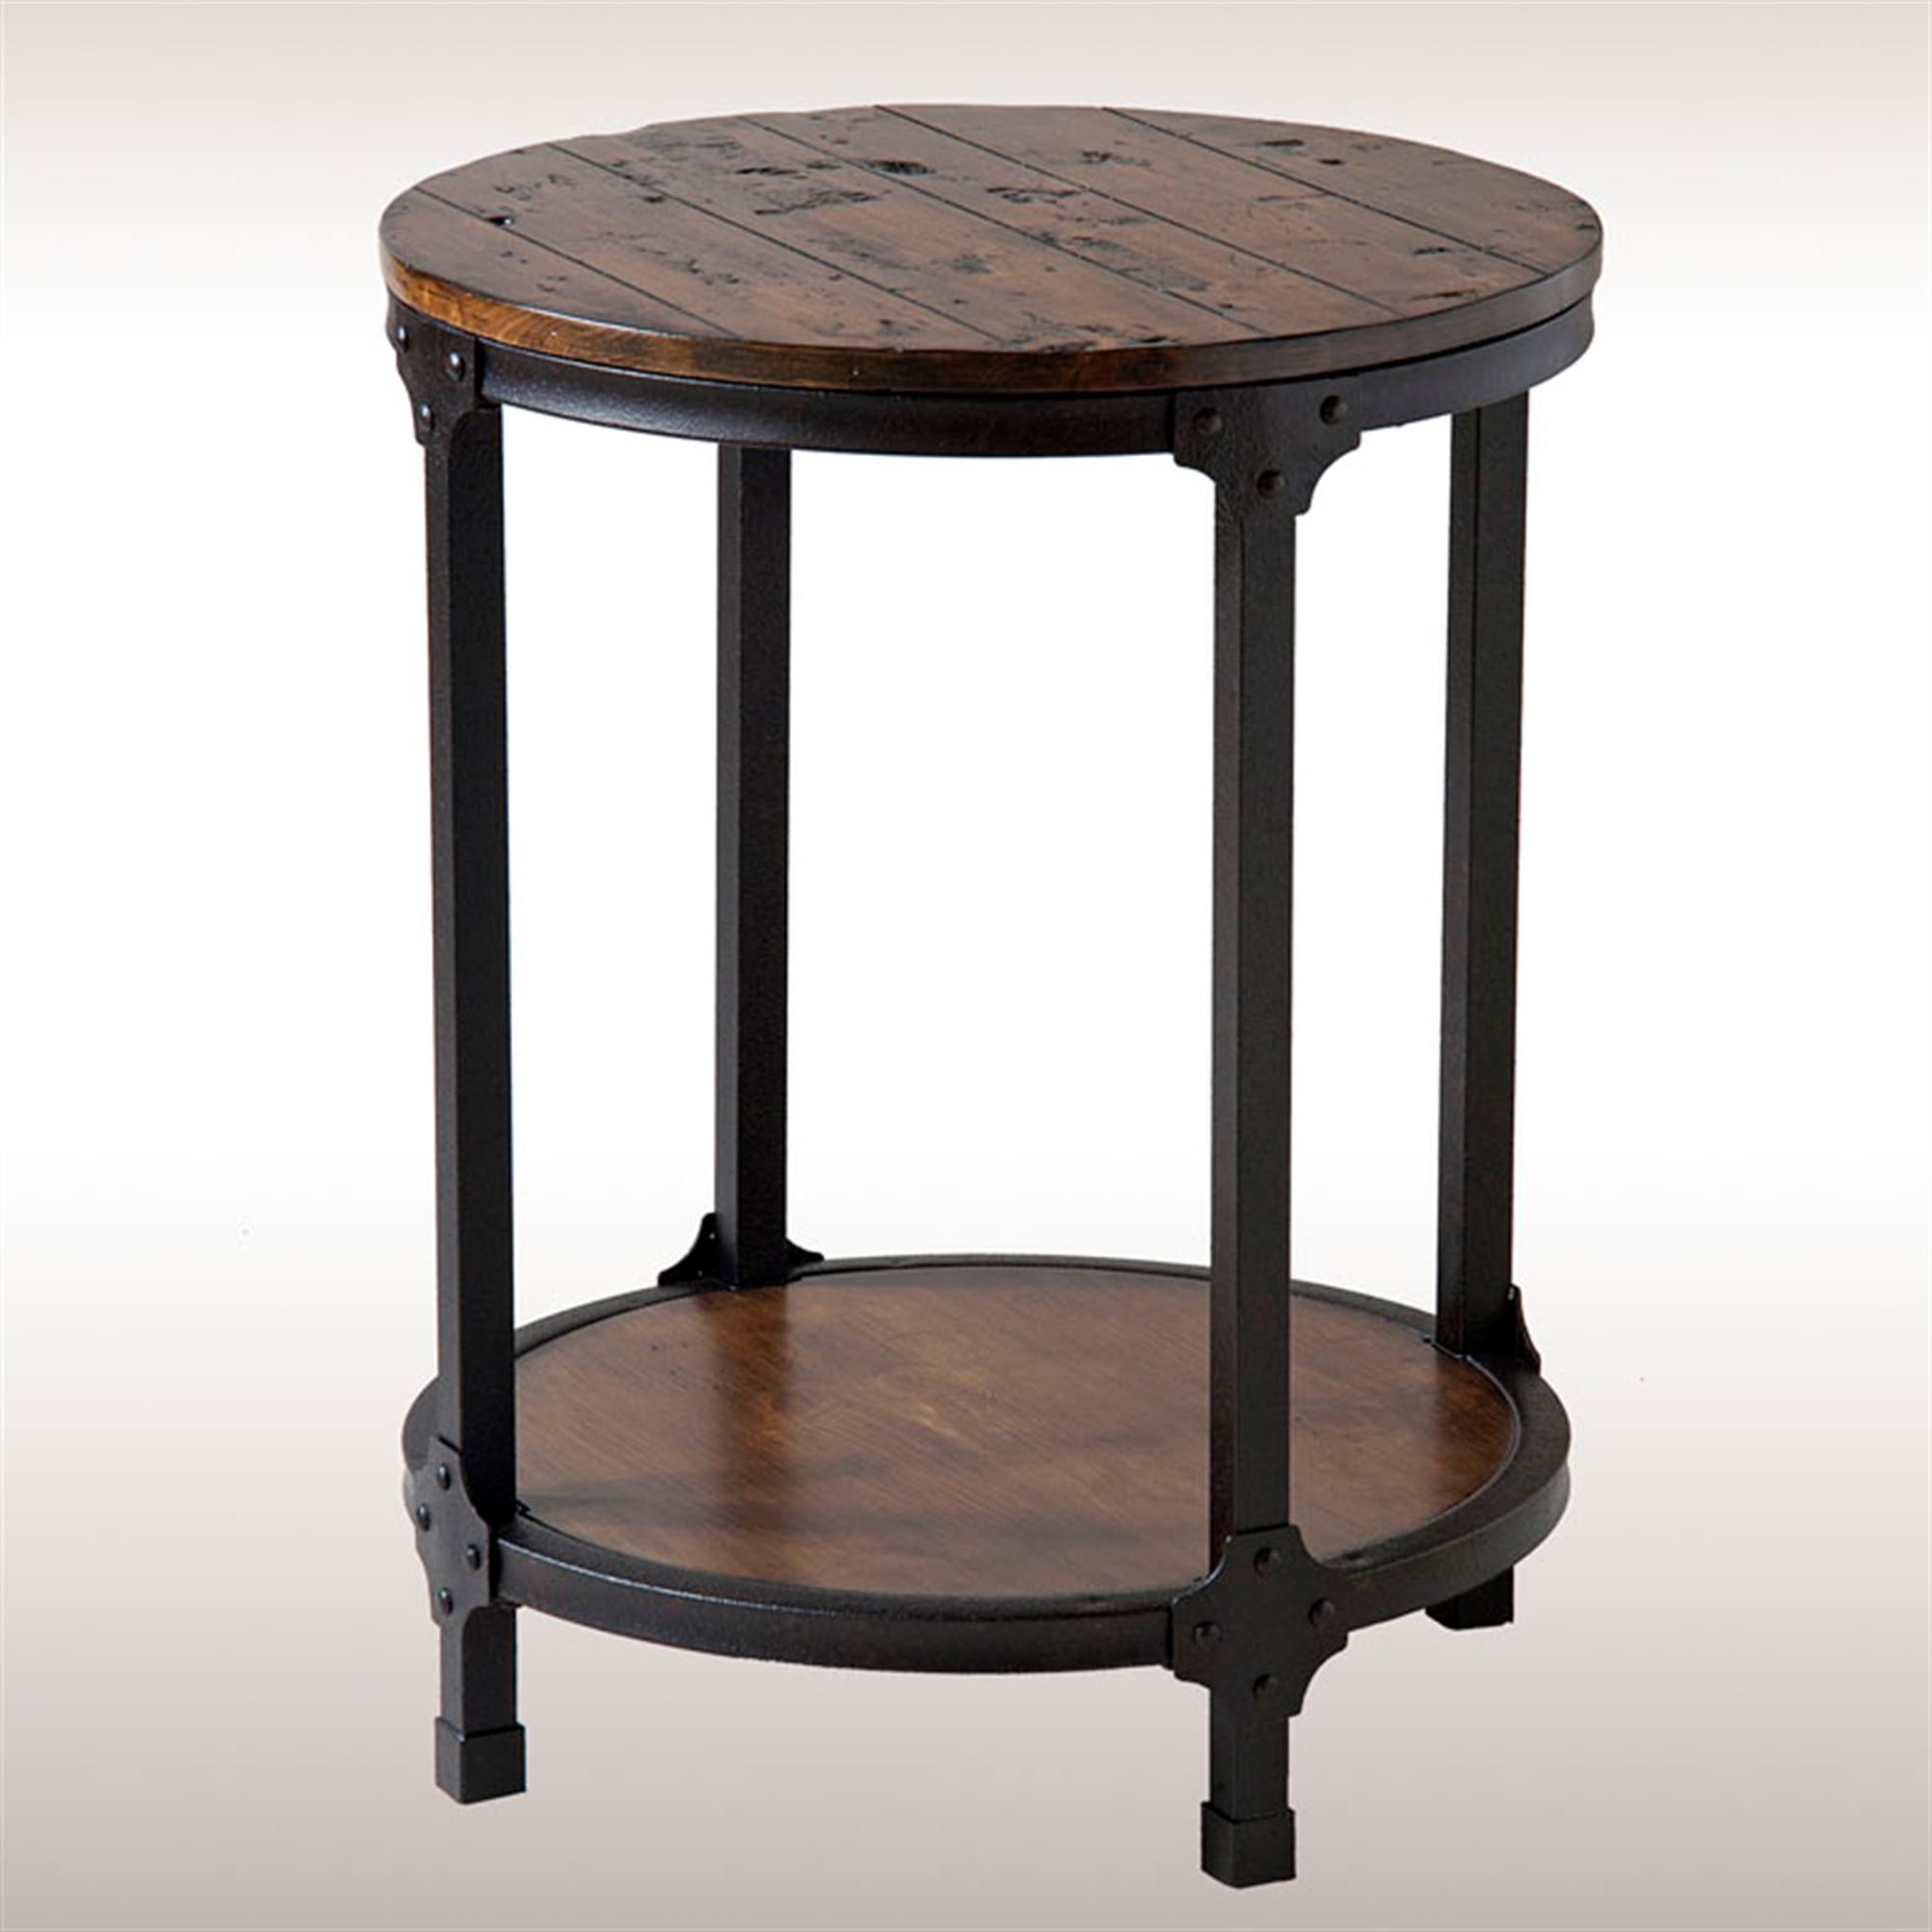 macon rustic round accent table aged brown touch zoom nautical rope chandelier wall clock target threshold windham cabinet distressed coffee antique nesting tables with inlay